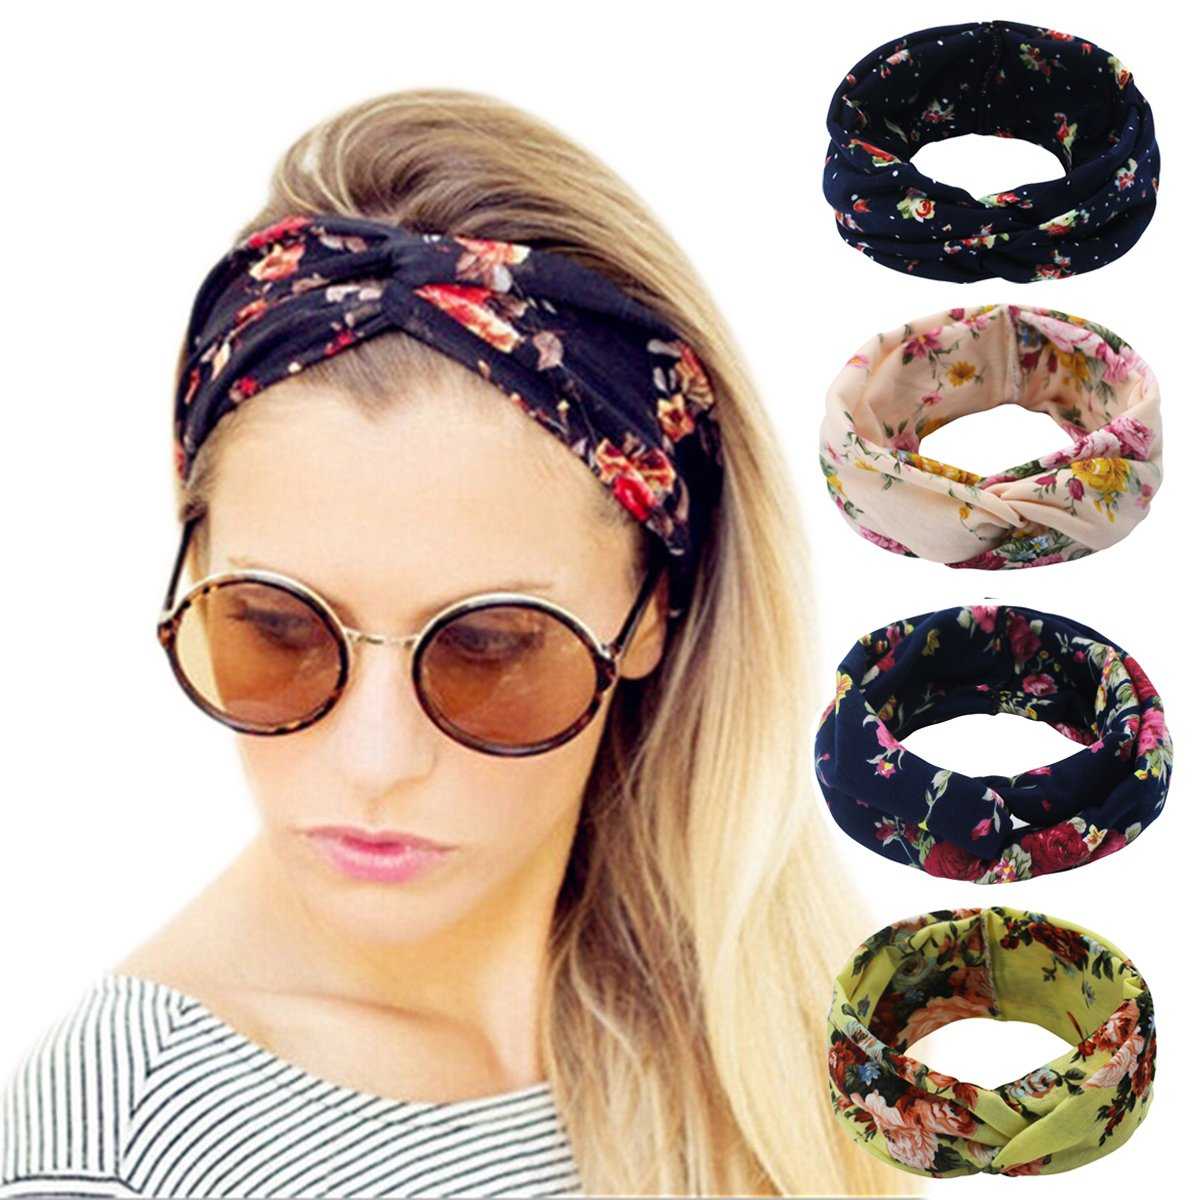 1b0537e0af43 Amazon.com  Ordenado 4 Pack Women s Headbands Elastic Turban Head Wrap  Floal Style Hair Band  Clothing